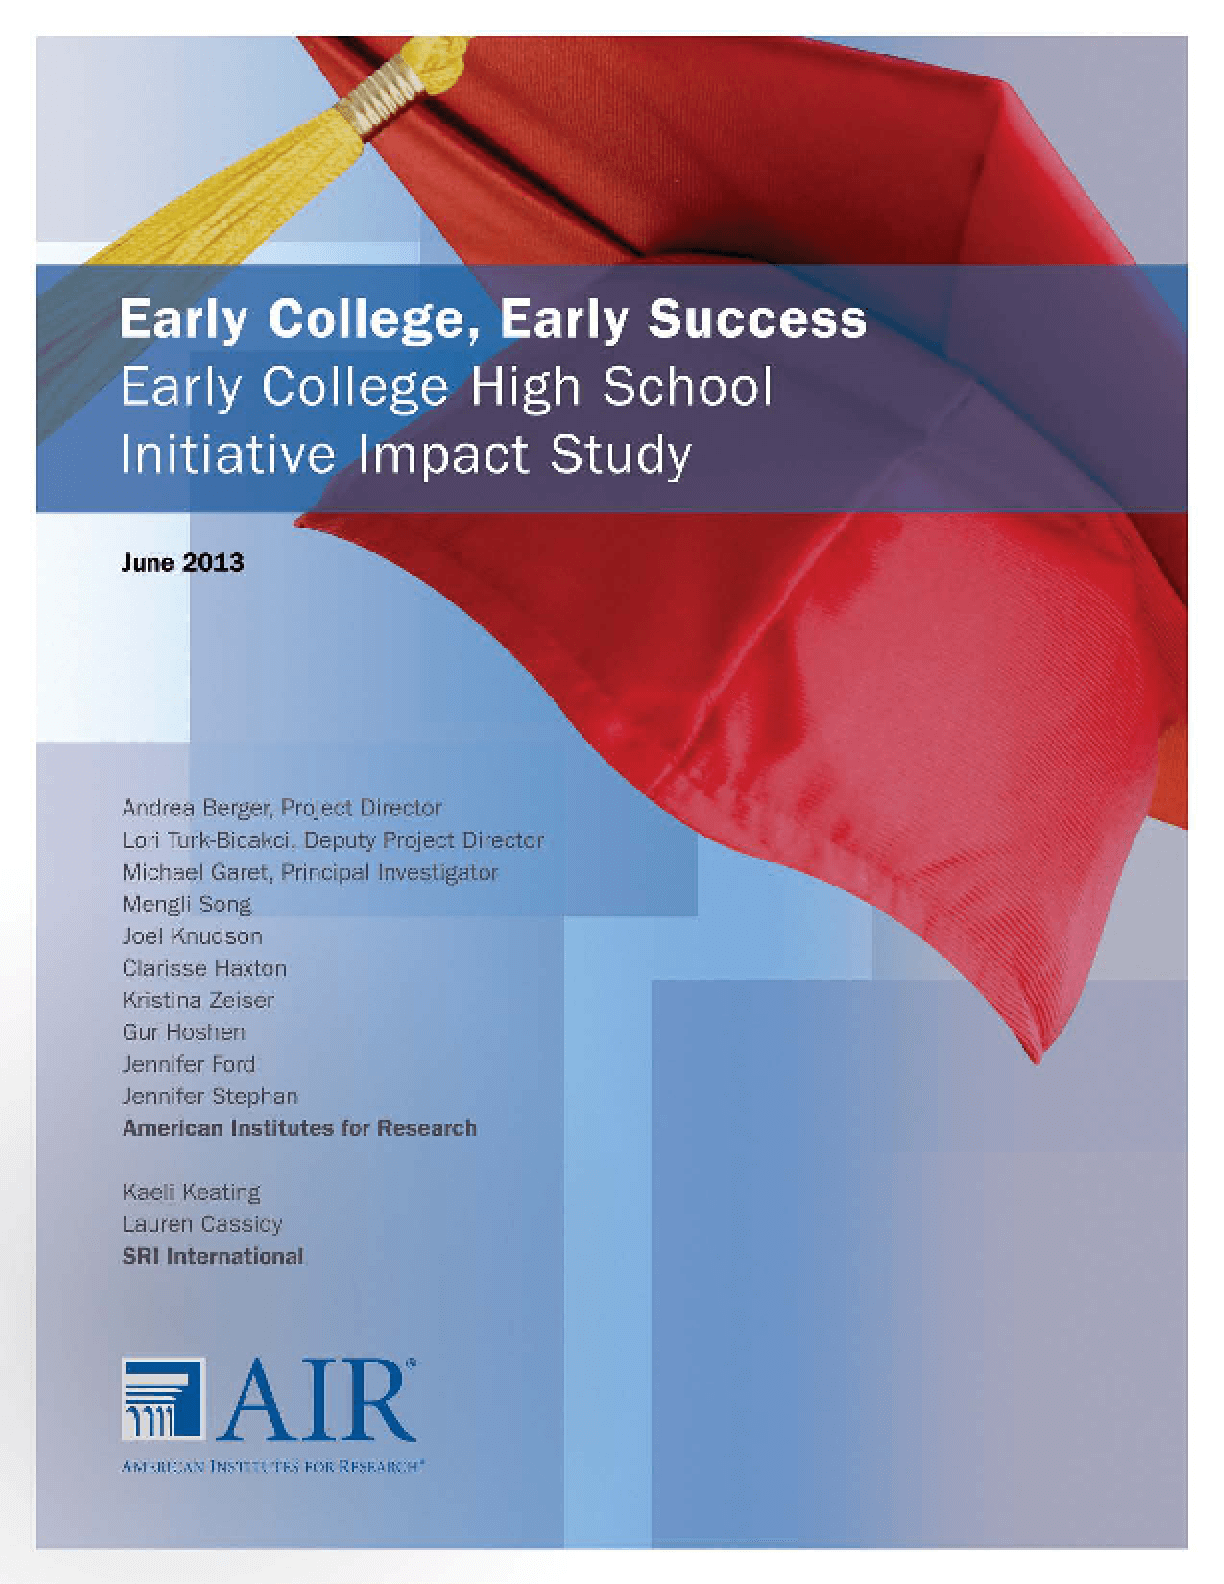 Early College, Early Success: Early College High School Initiative Impact Study